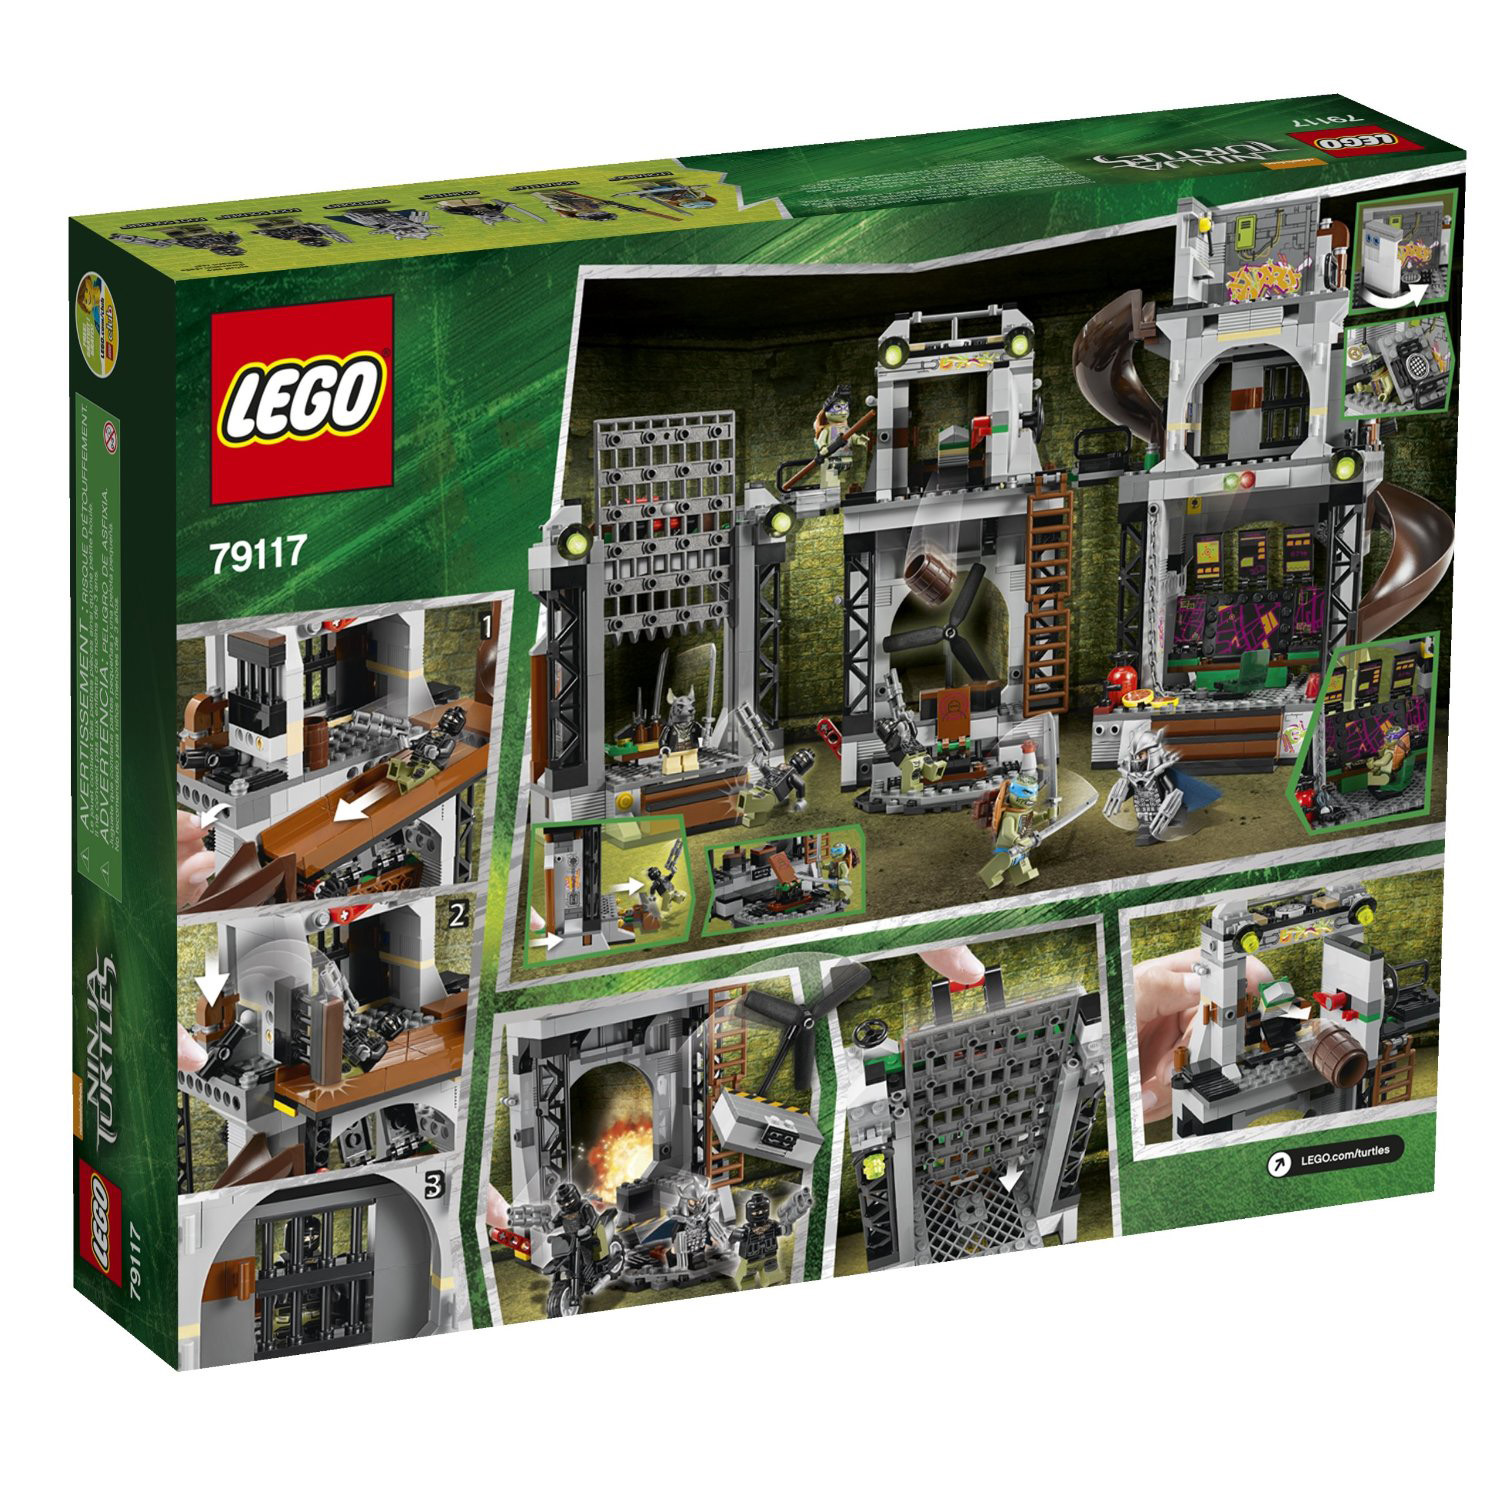 LEGO x Teenage Mutant Ninja Turtles Movie Set 19